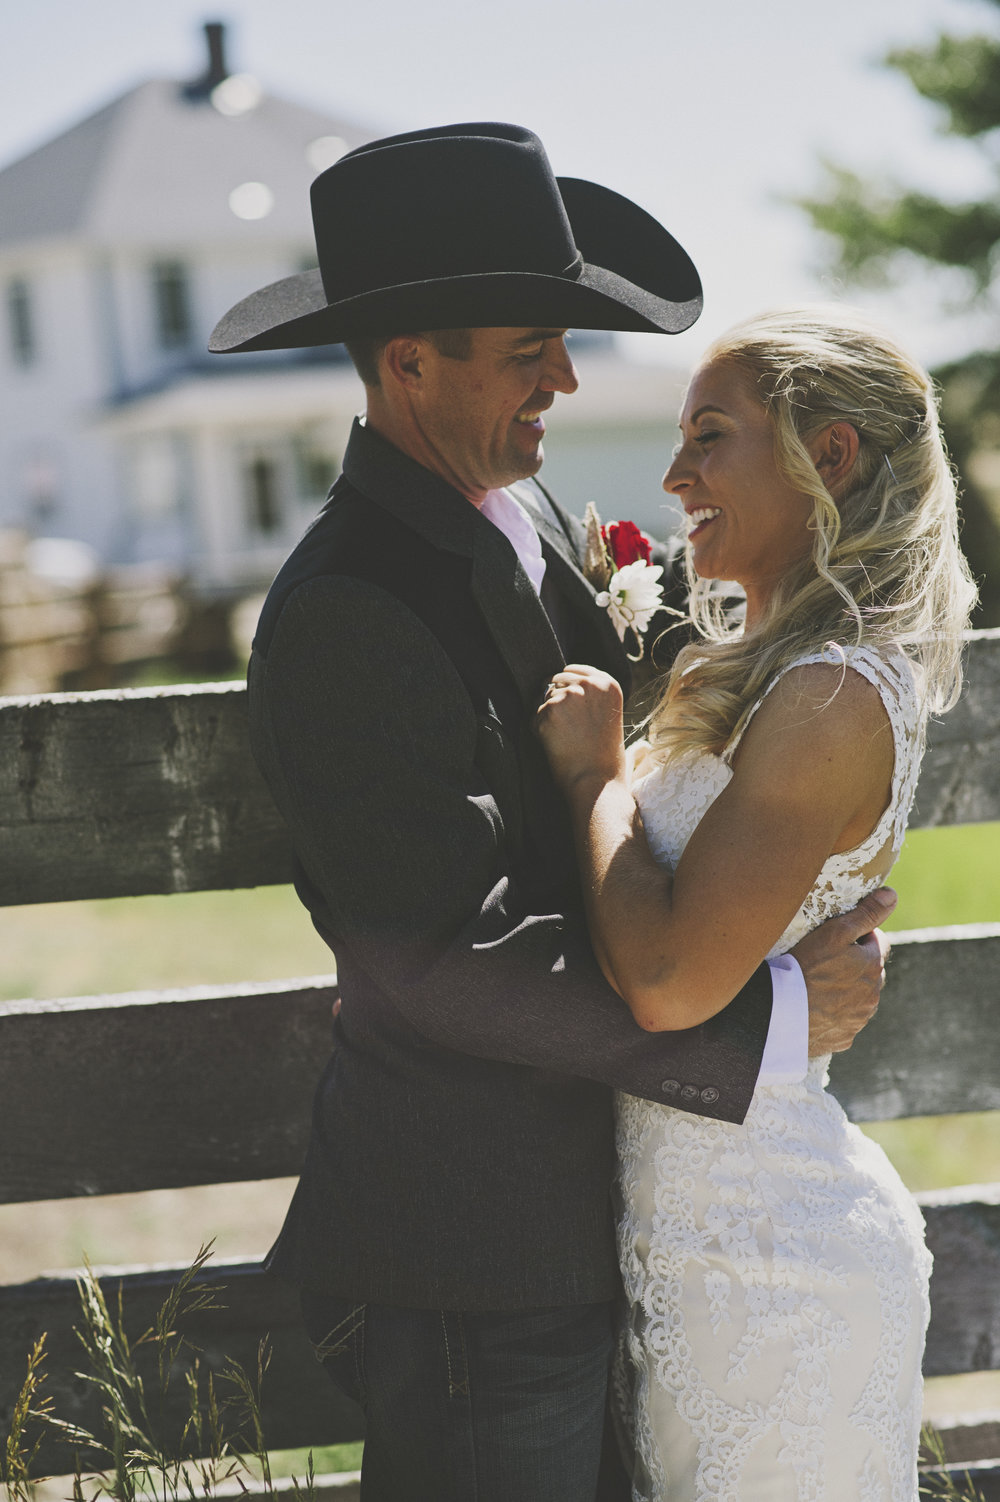 Erica Lind + Jeff Heim Wedding_Rustic Wedding_Montana Wedding_Kelsey Lane Photography-3954-2 copy.jpg